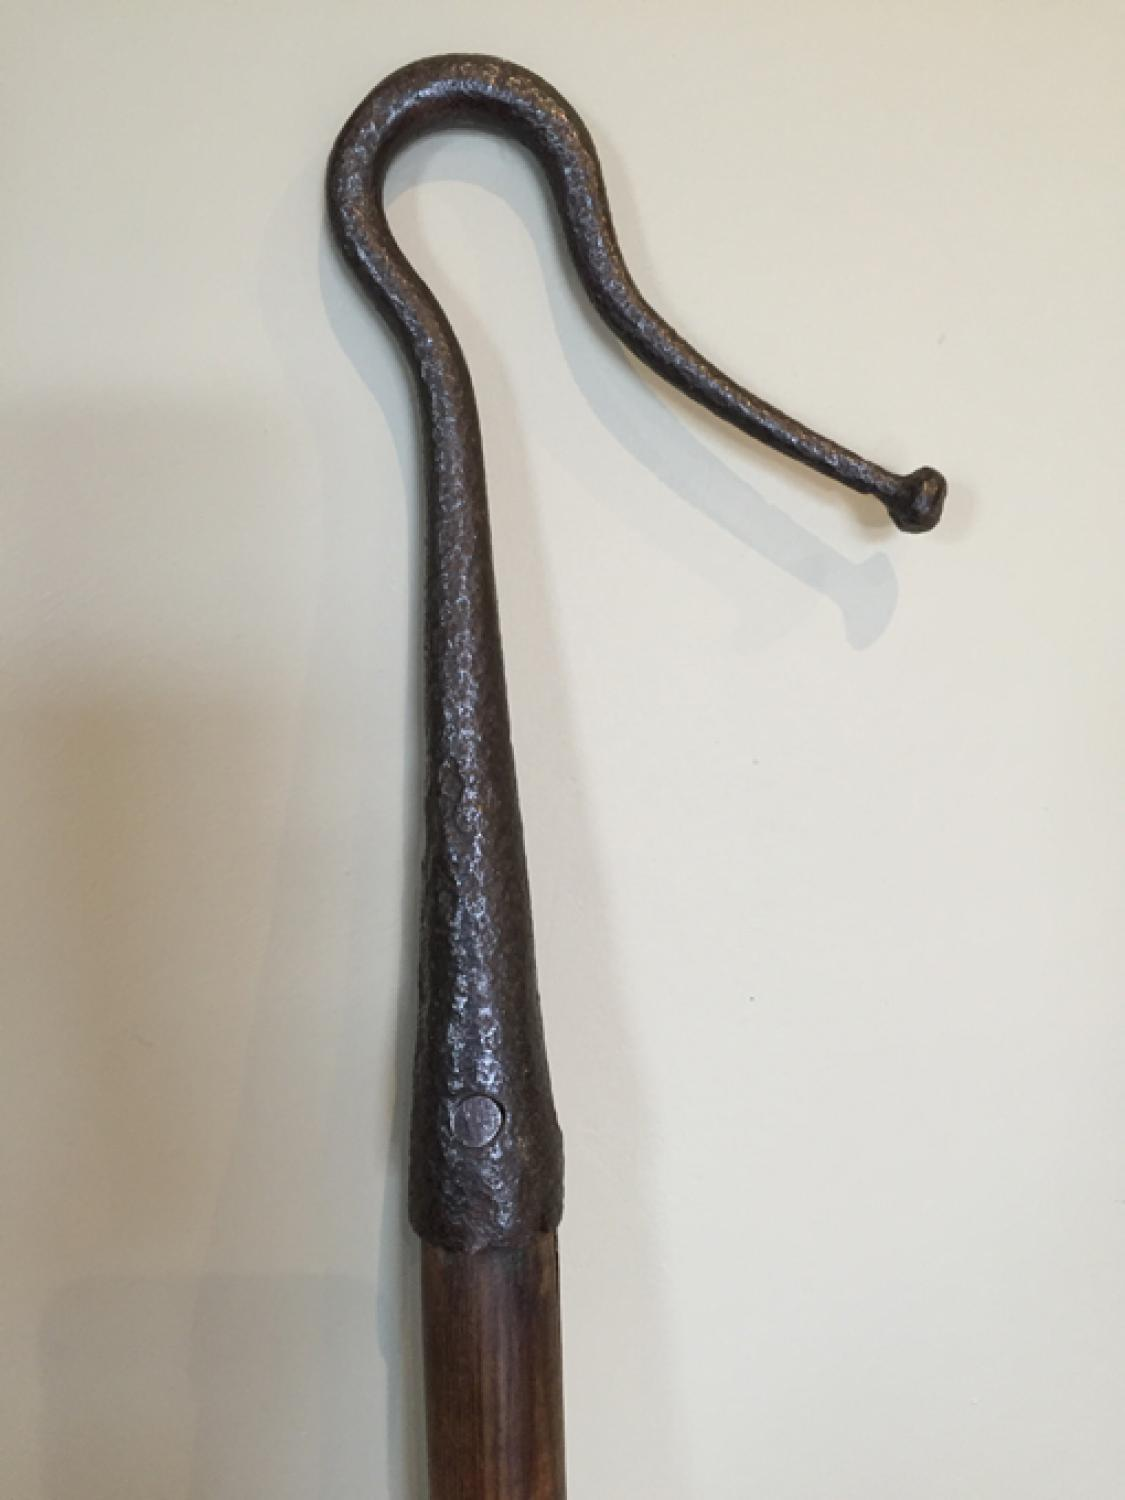 Antique Shepherd's Crook (Norfolk)